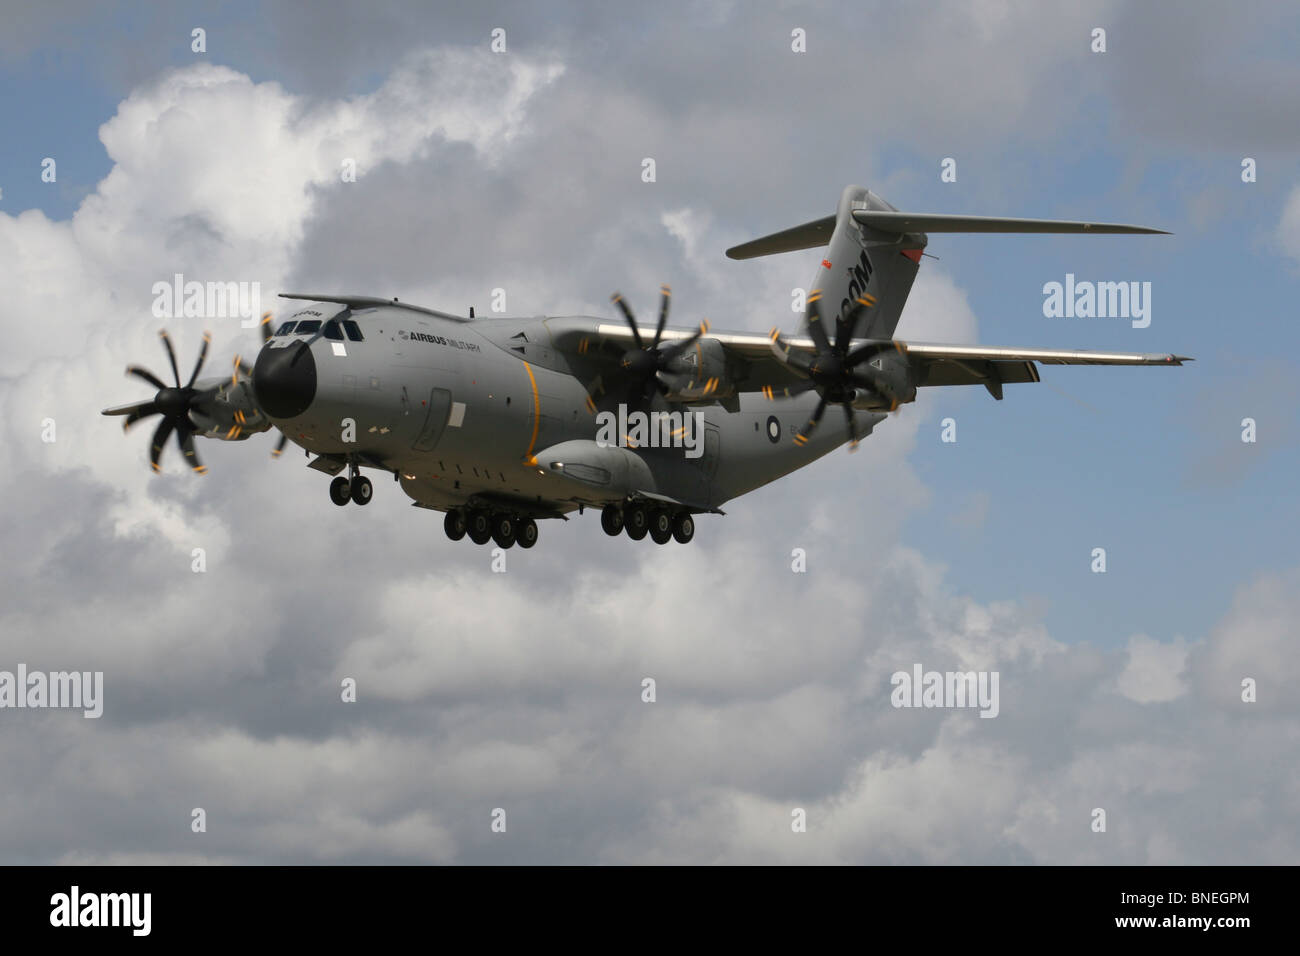 AIRBUS A400M TRANSPORT PLANE - Stock Image